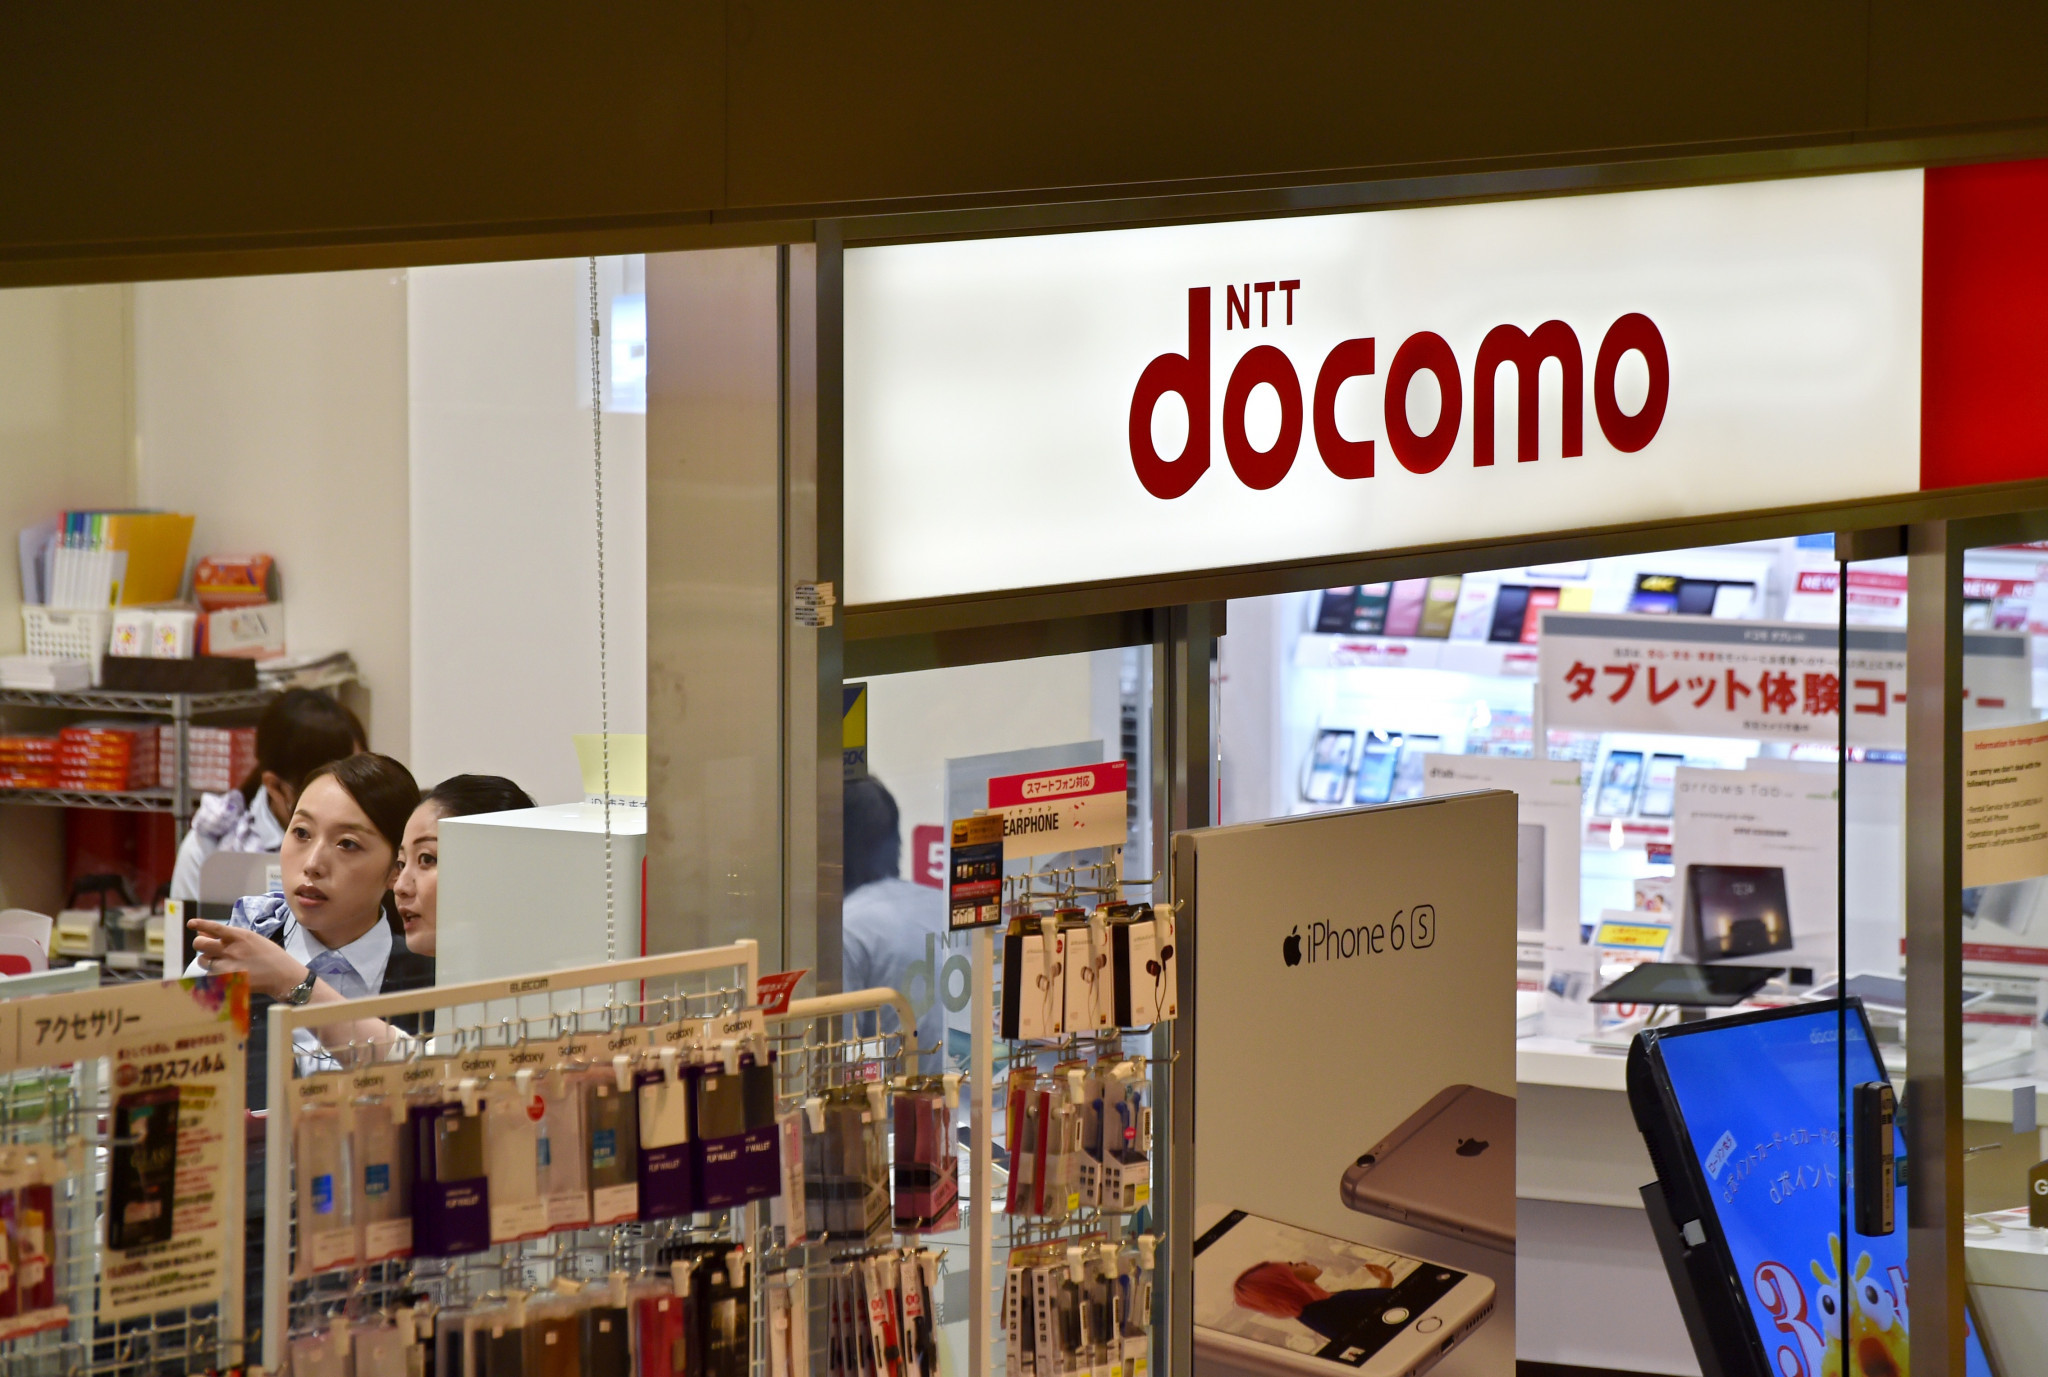 NTT DOCOMO is a Tokyo 2020 Gold Partner for telecommunications ©Getty Images